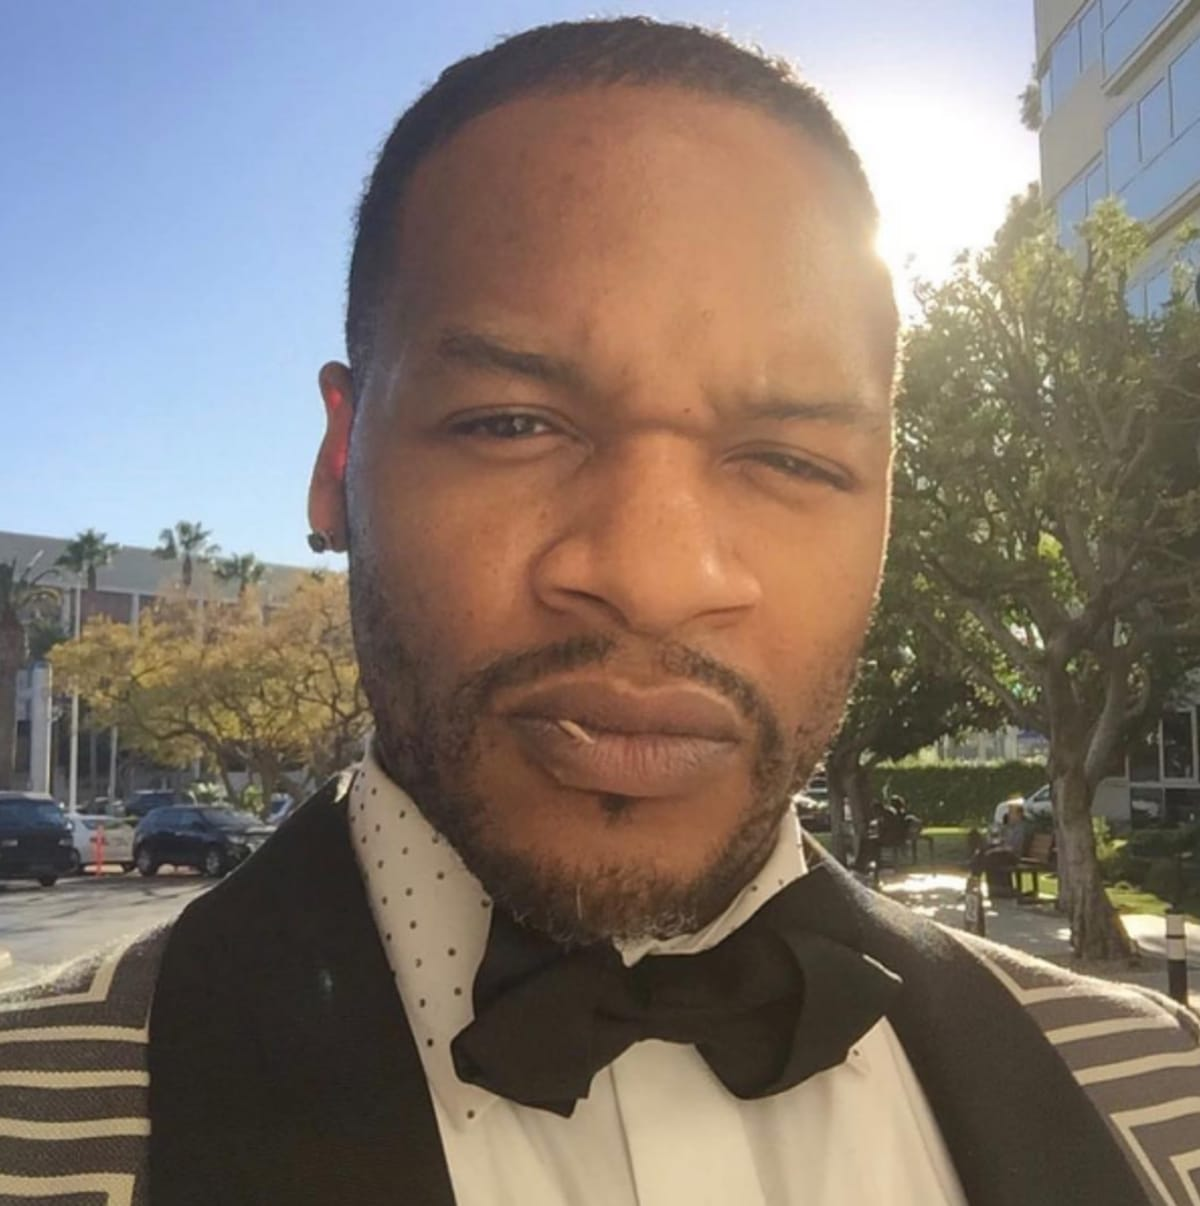 Jaheim Roasted By Charlamagne Tha God, Twitter Users Over